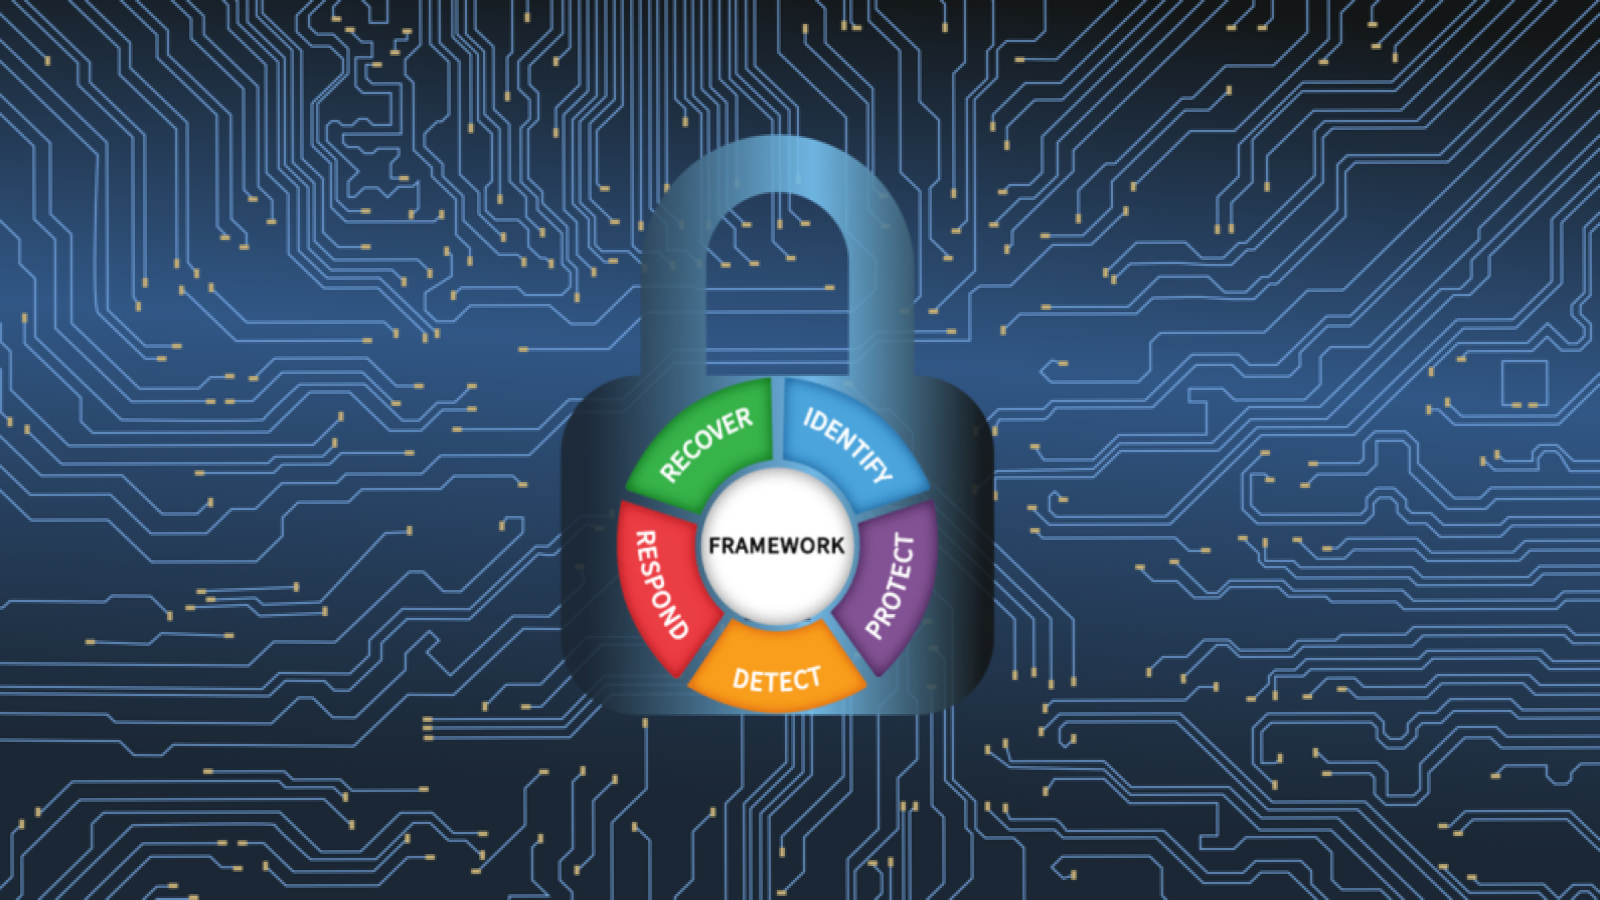 Engage in Cybersecurity